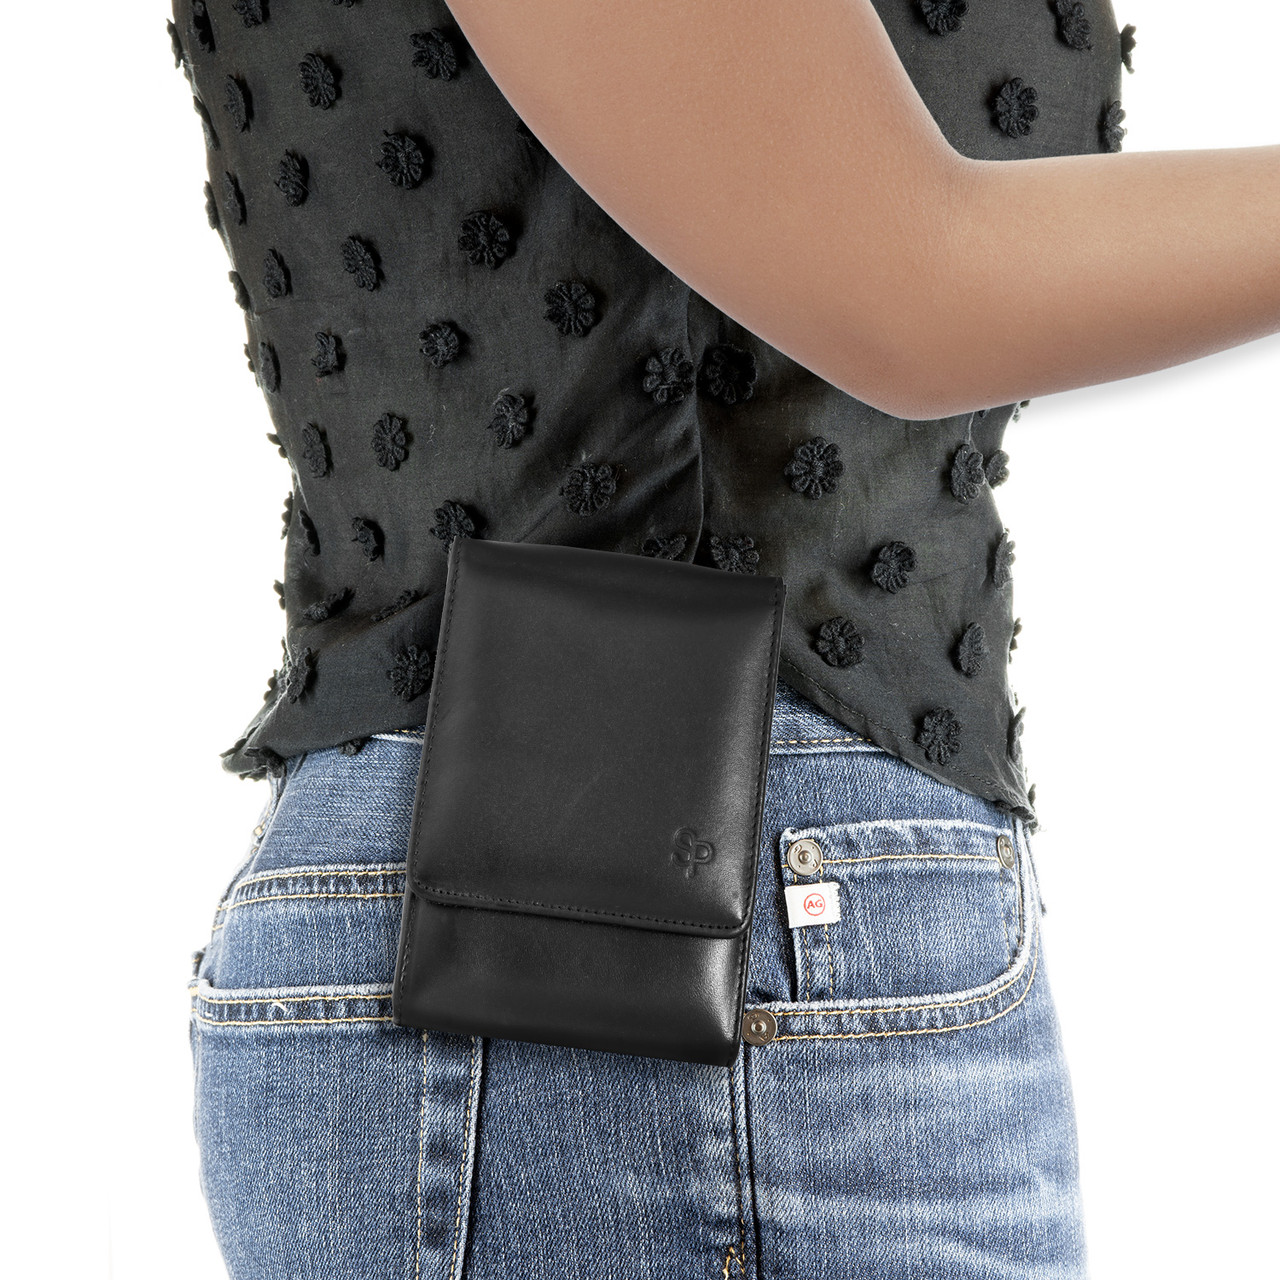 Walther PPQ Sub-Compact Black Leather Holster